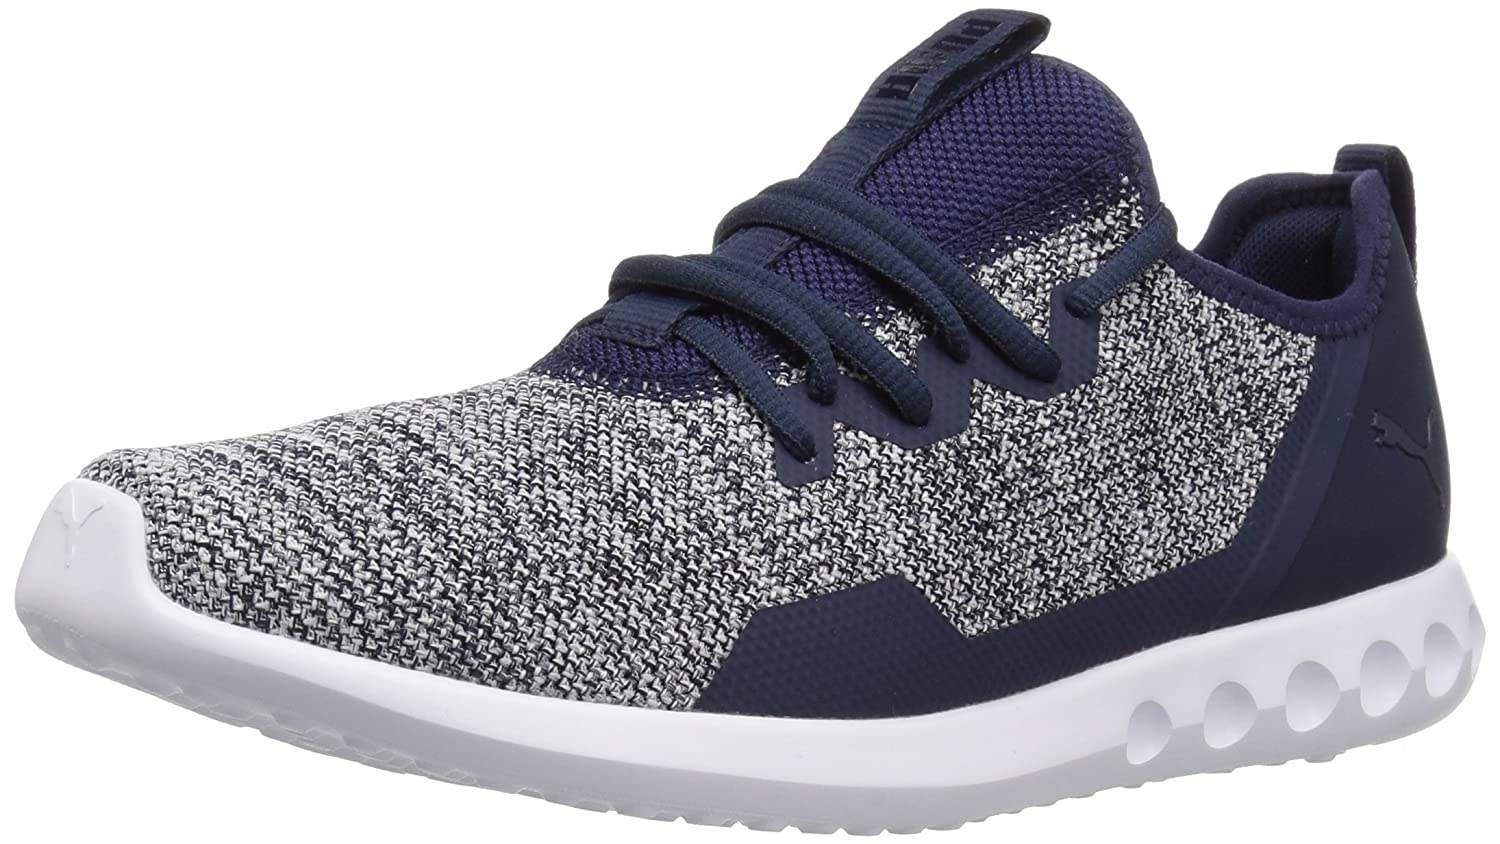 53a99cad7178 Puma Men s Carson 2 X Knit Sneaker  Buy Online at Low Prices in India -  Amazon.in